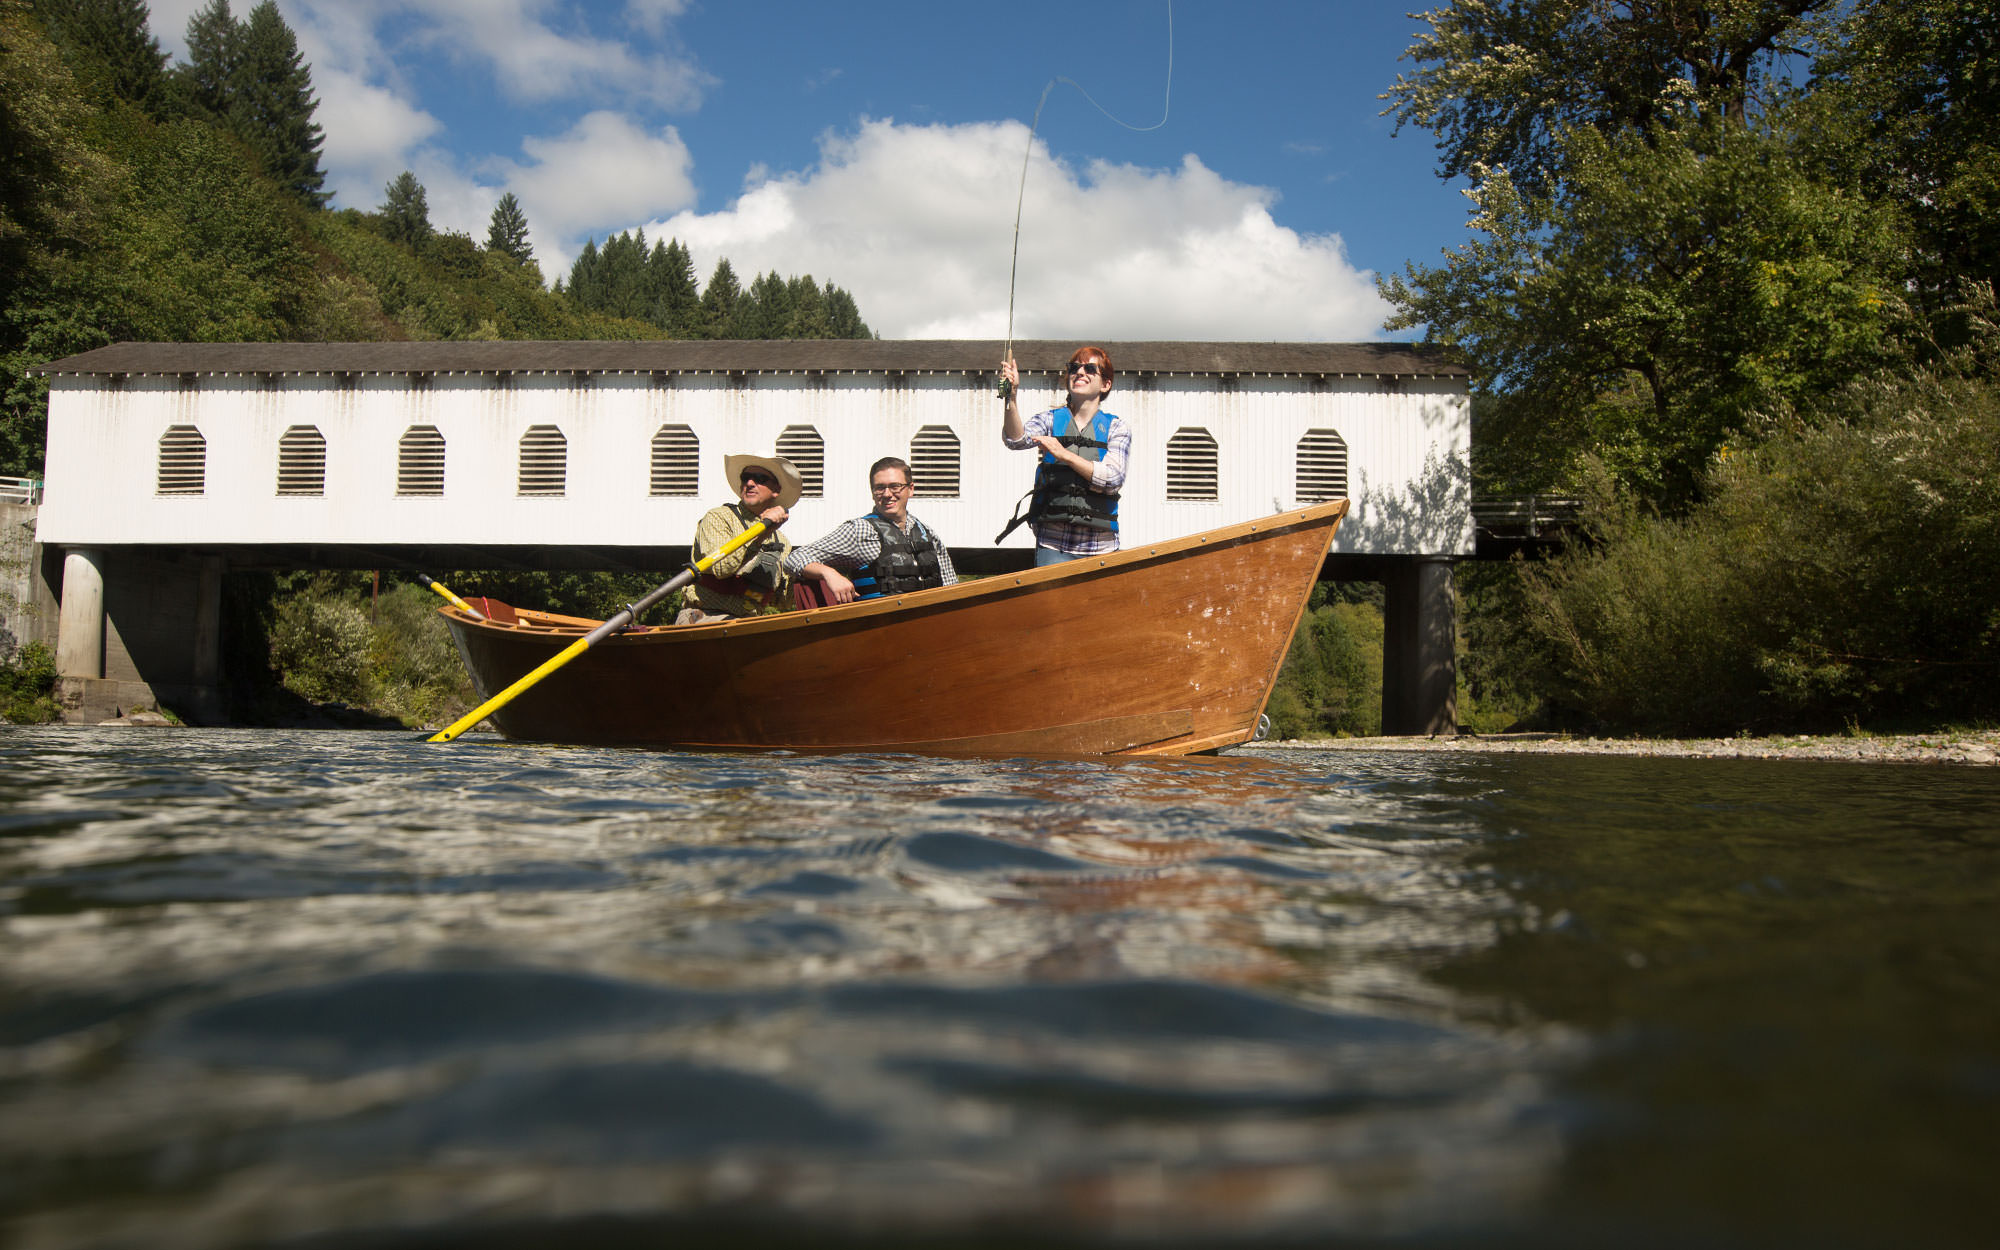 A women casts a line from a drift boat in front of a historic covered bridge.